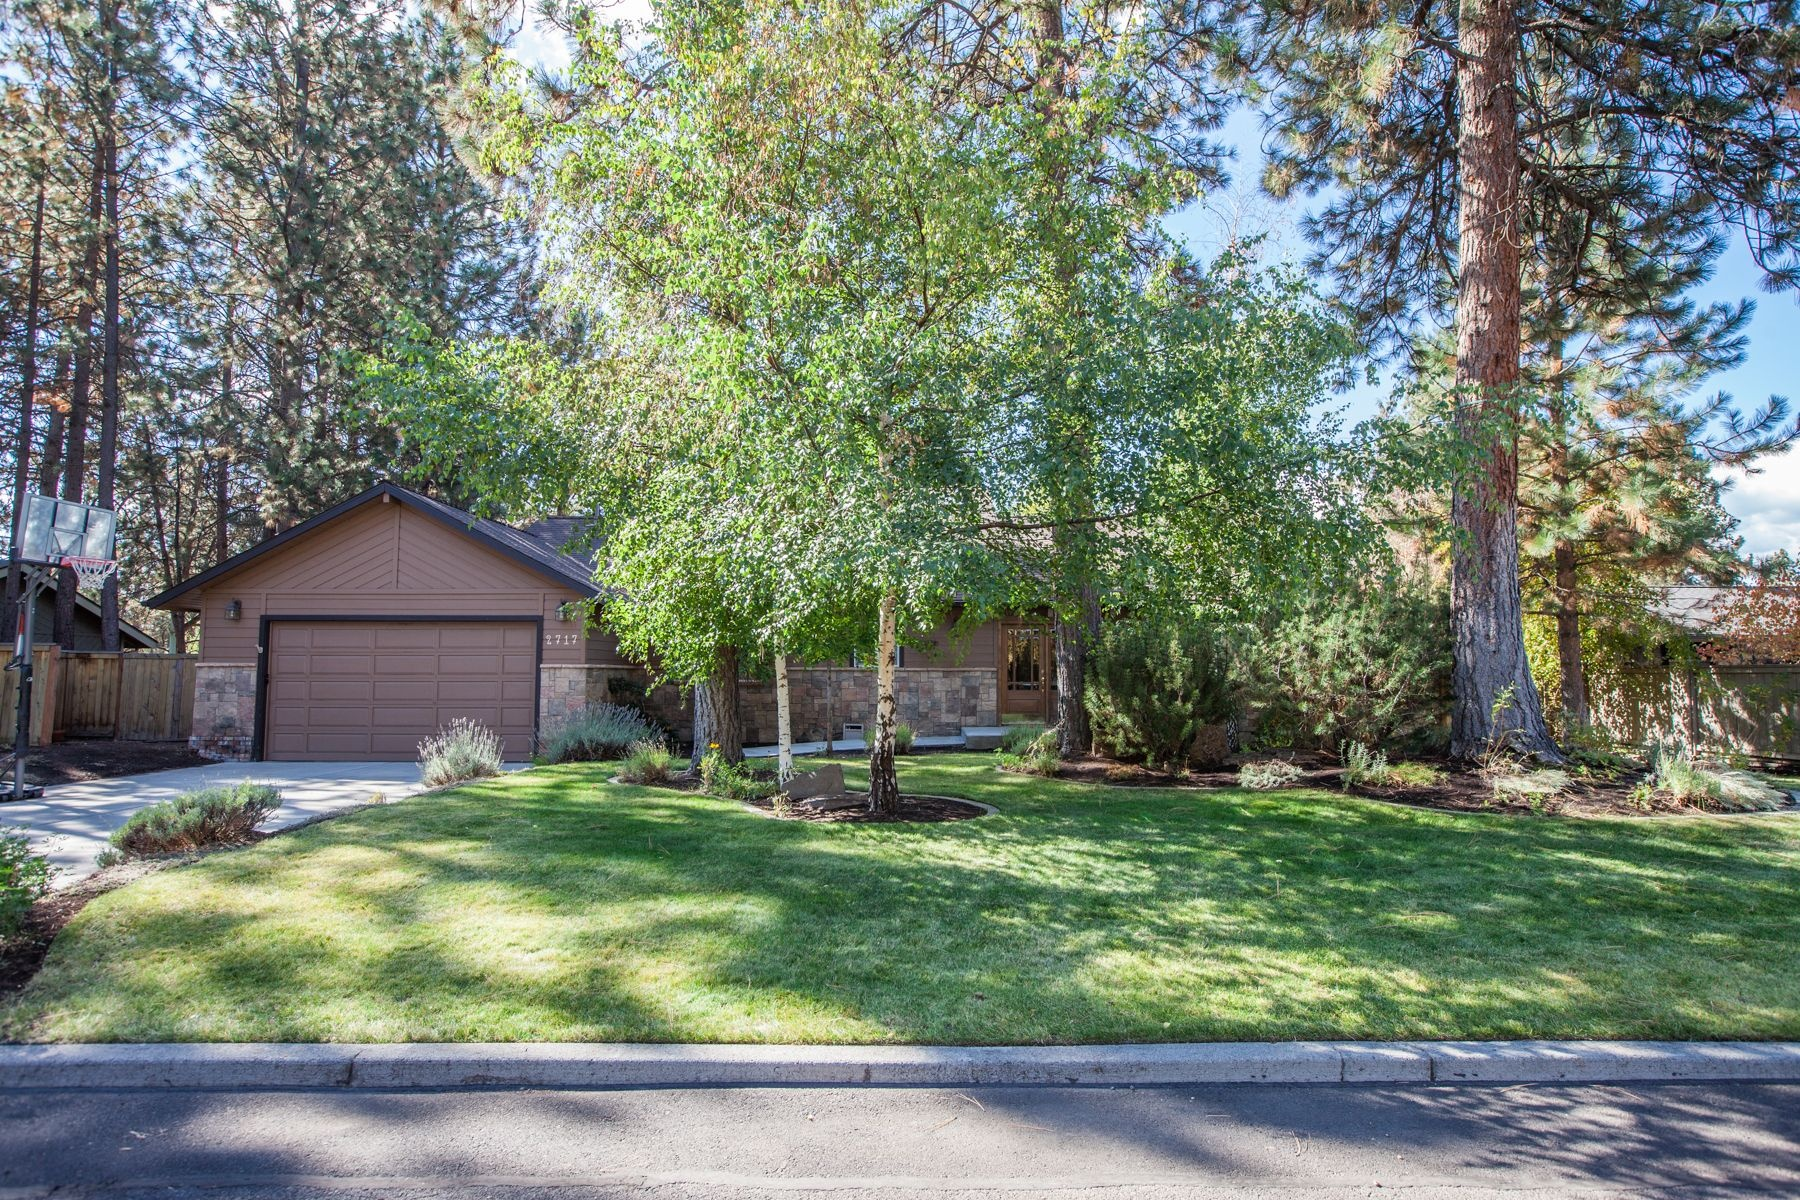 Single Family Home for Sale at 2717 NW Marken Street, BEND Bend, Oregon, 97703 United States